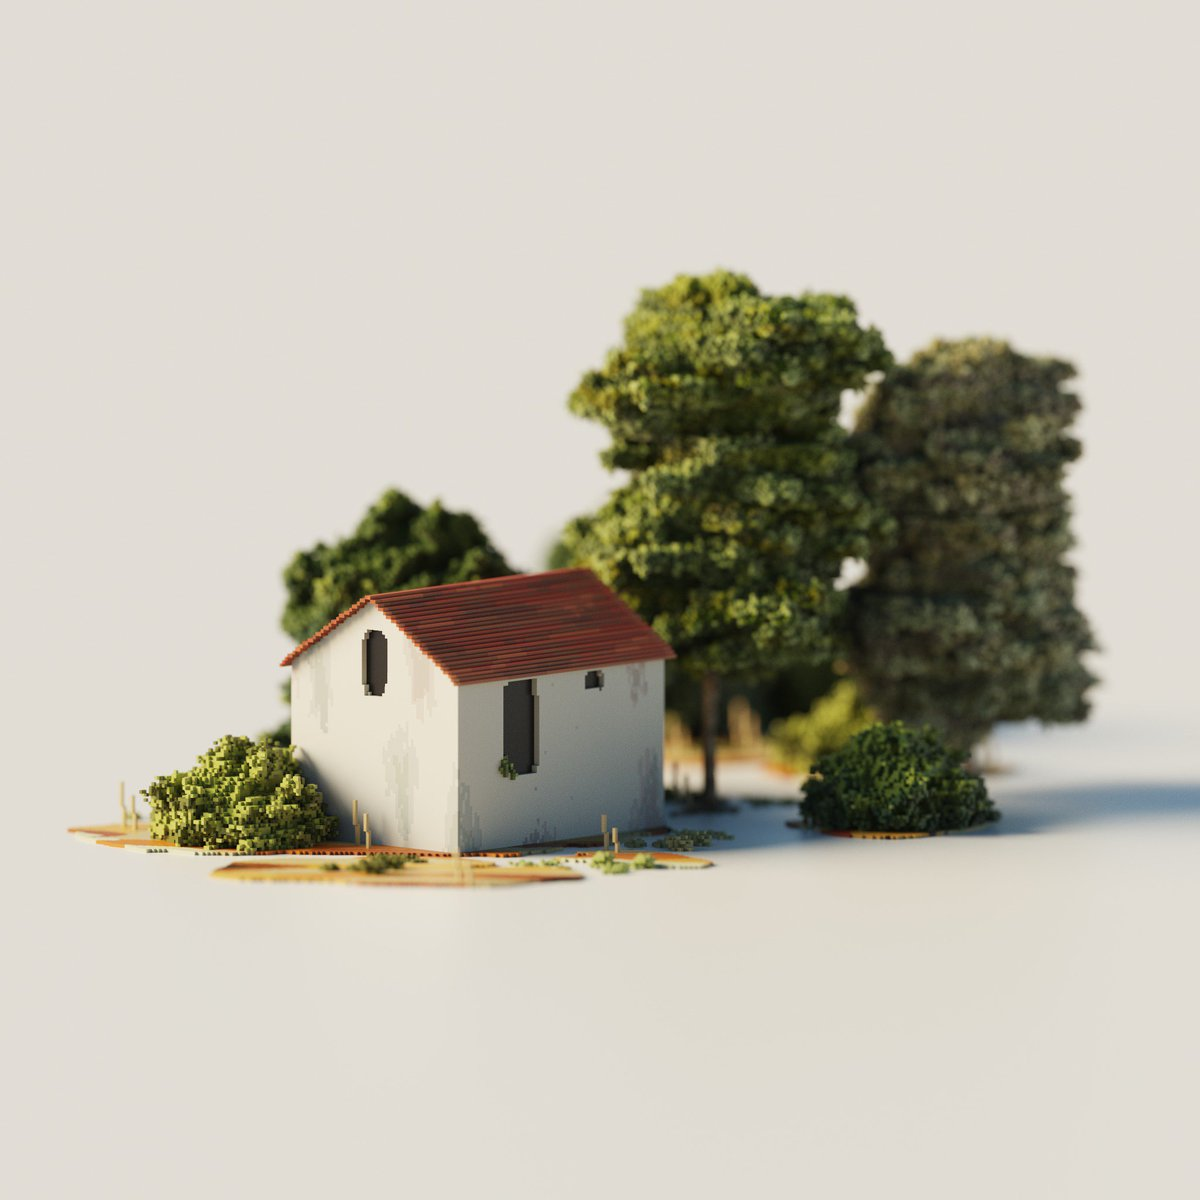 a little building :) had to take a 2 week break because of school but now was finally able to create something again  Made with #MagicaVoxel  Estimated time it took: 5-6 hrs  #voxel #voxels #voxelart #3d #render #3drender #magicavoxel<br>http://pic.twitter.com/L0NCPP2sC1